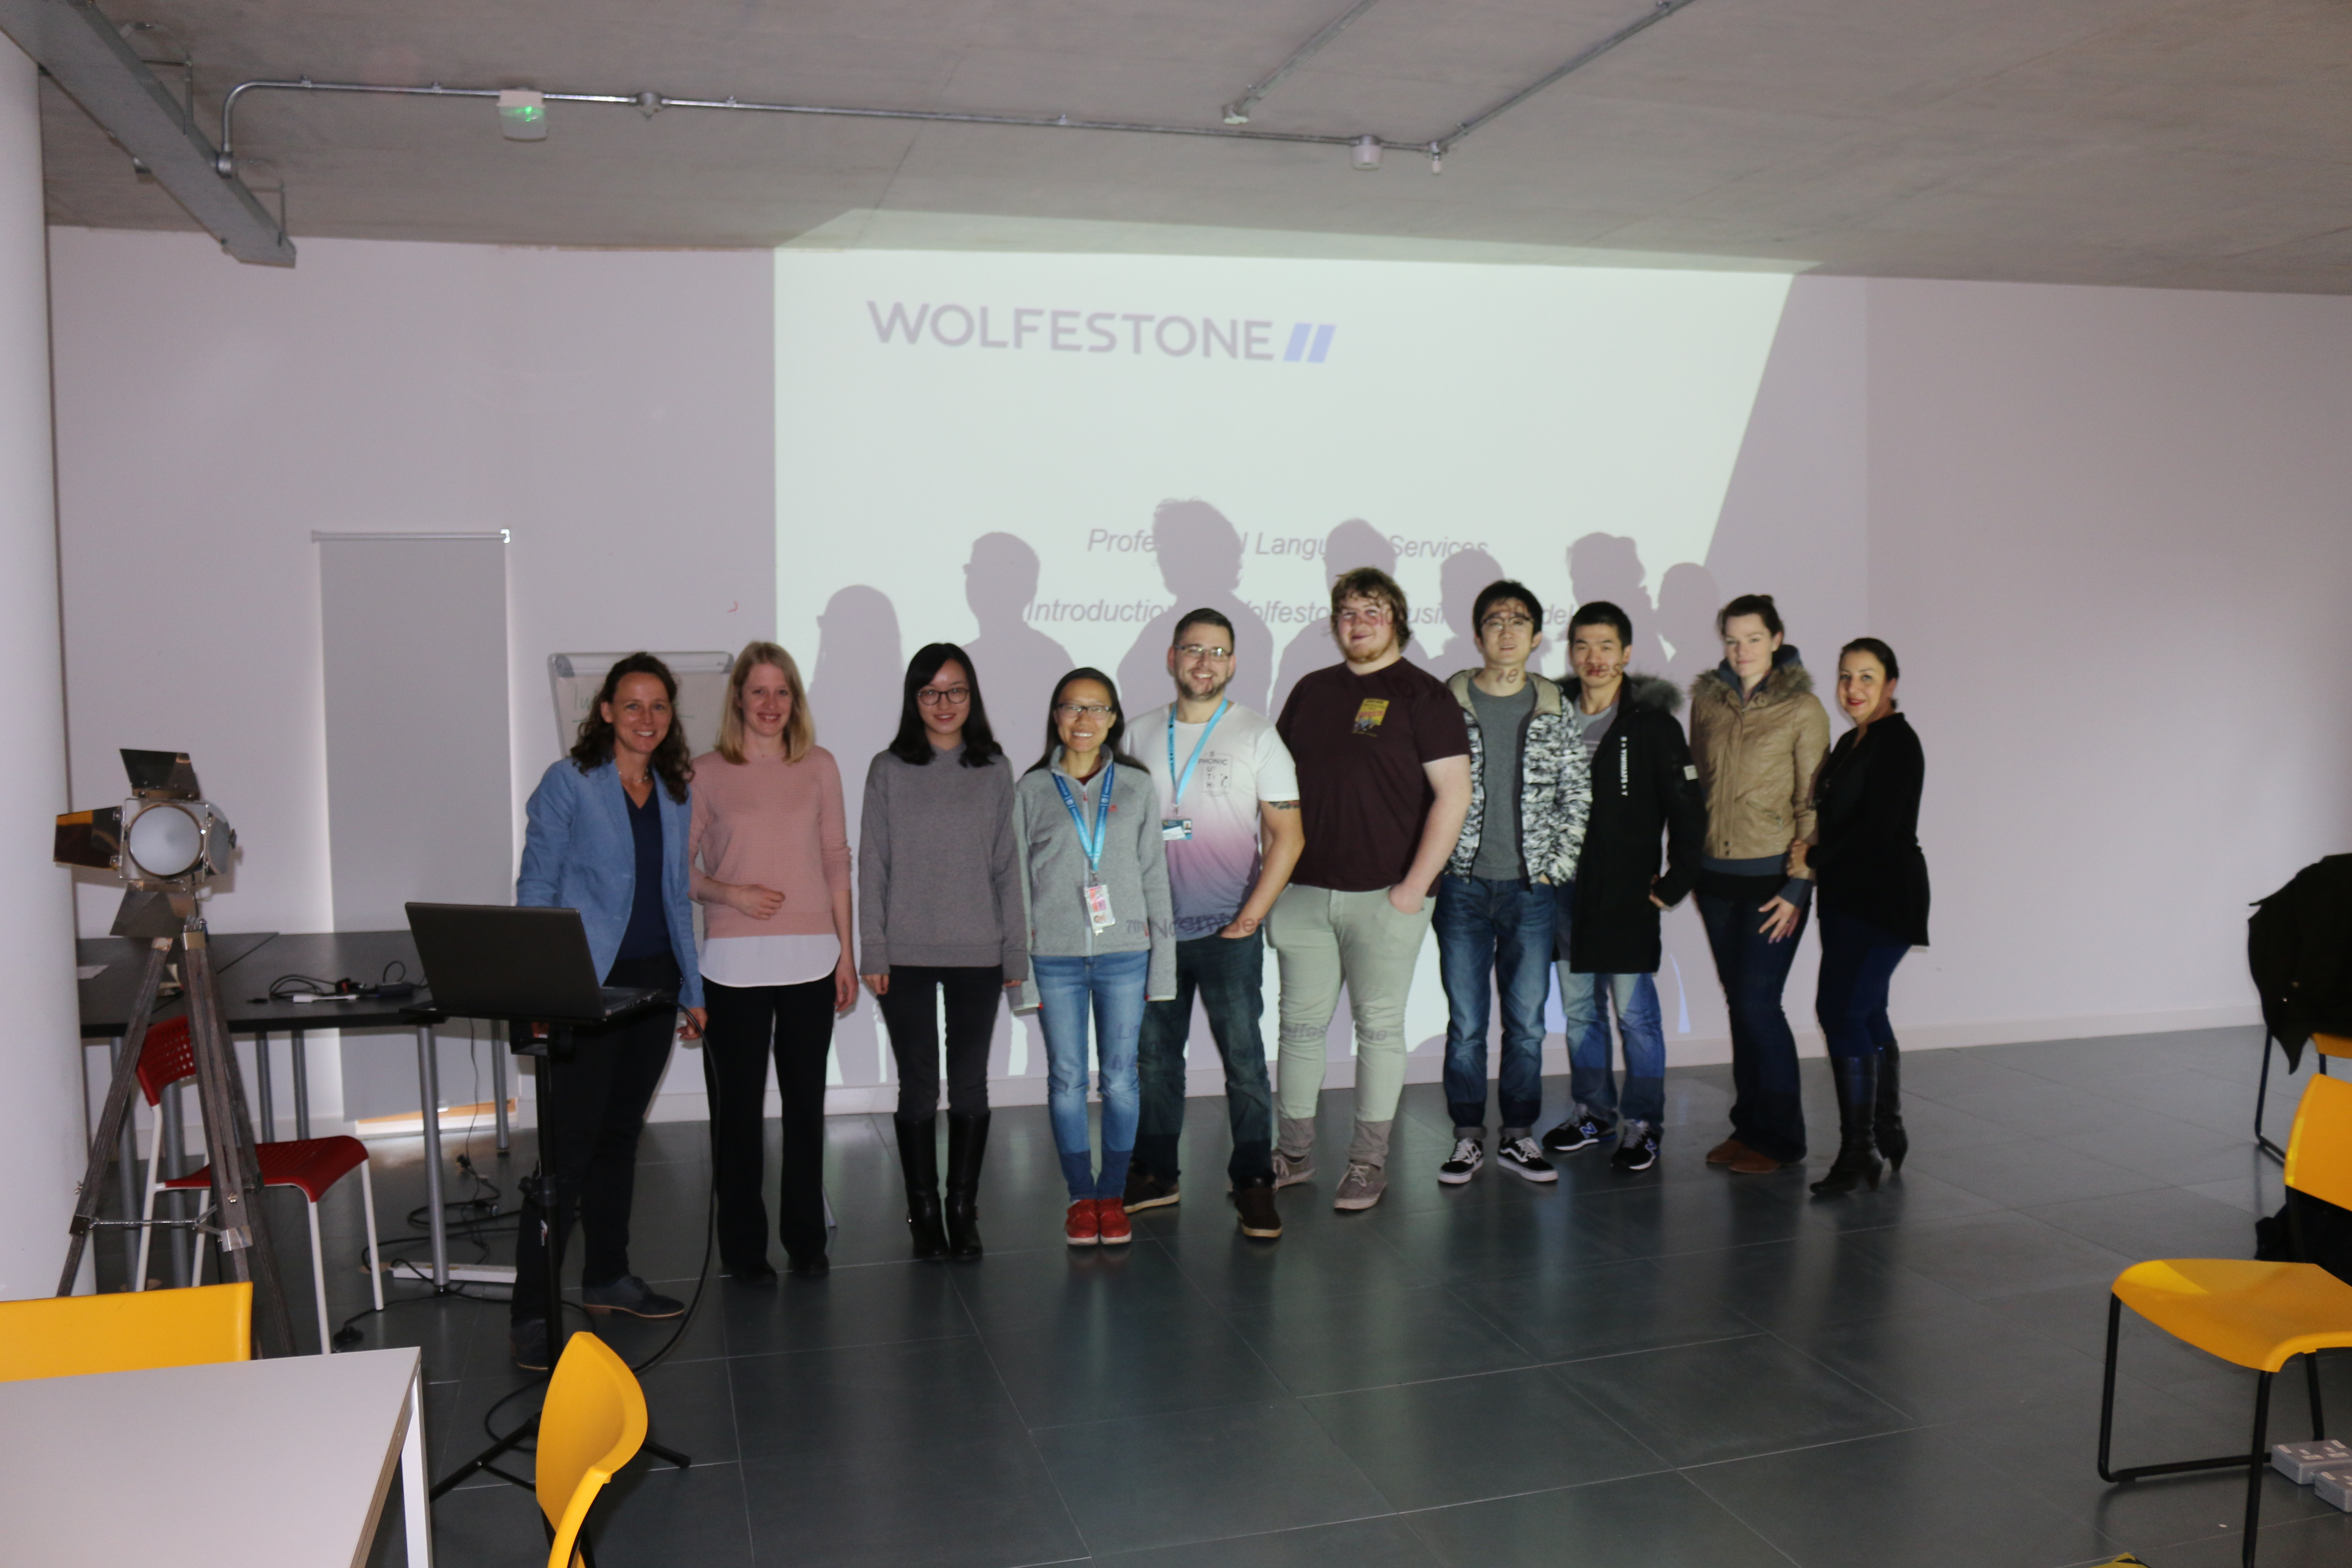 Group photo of students and Wolfestone's Linda Roper.